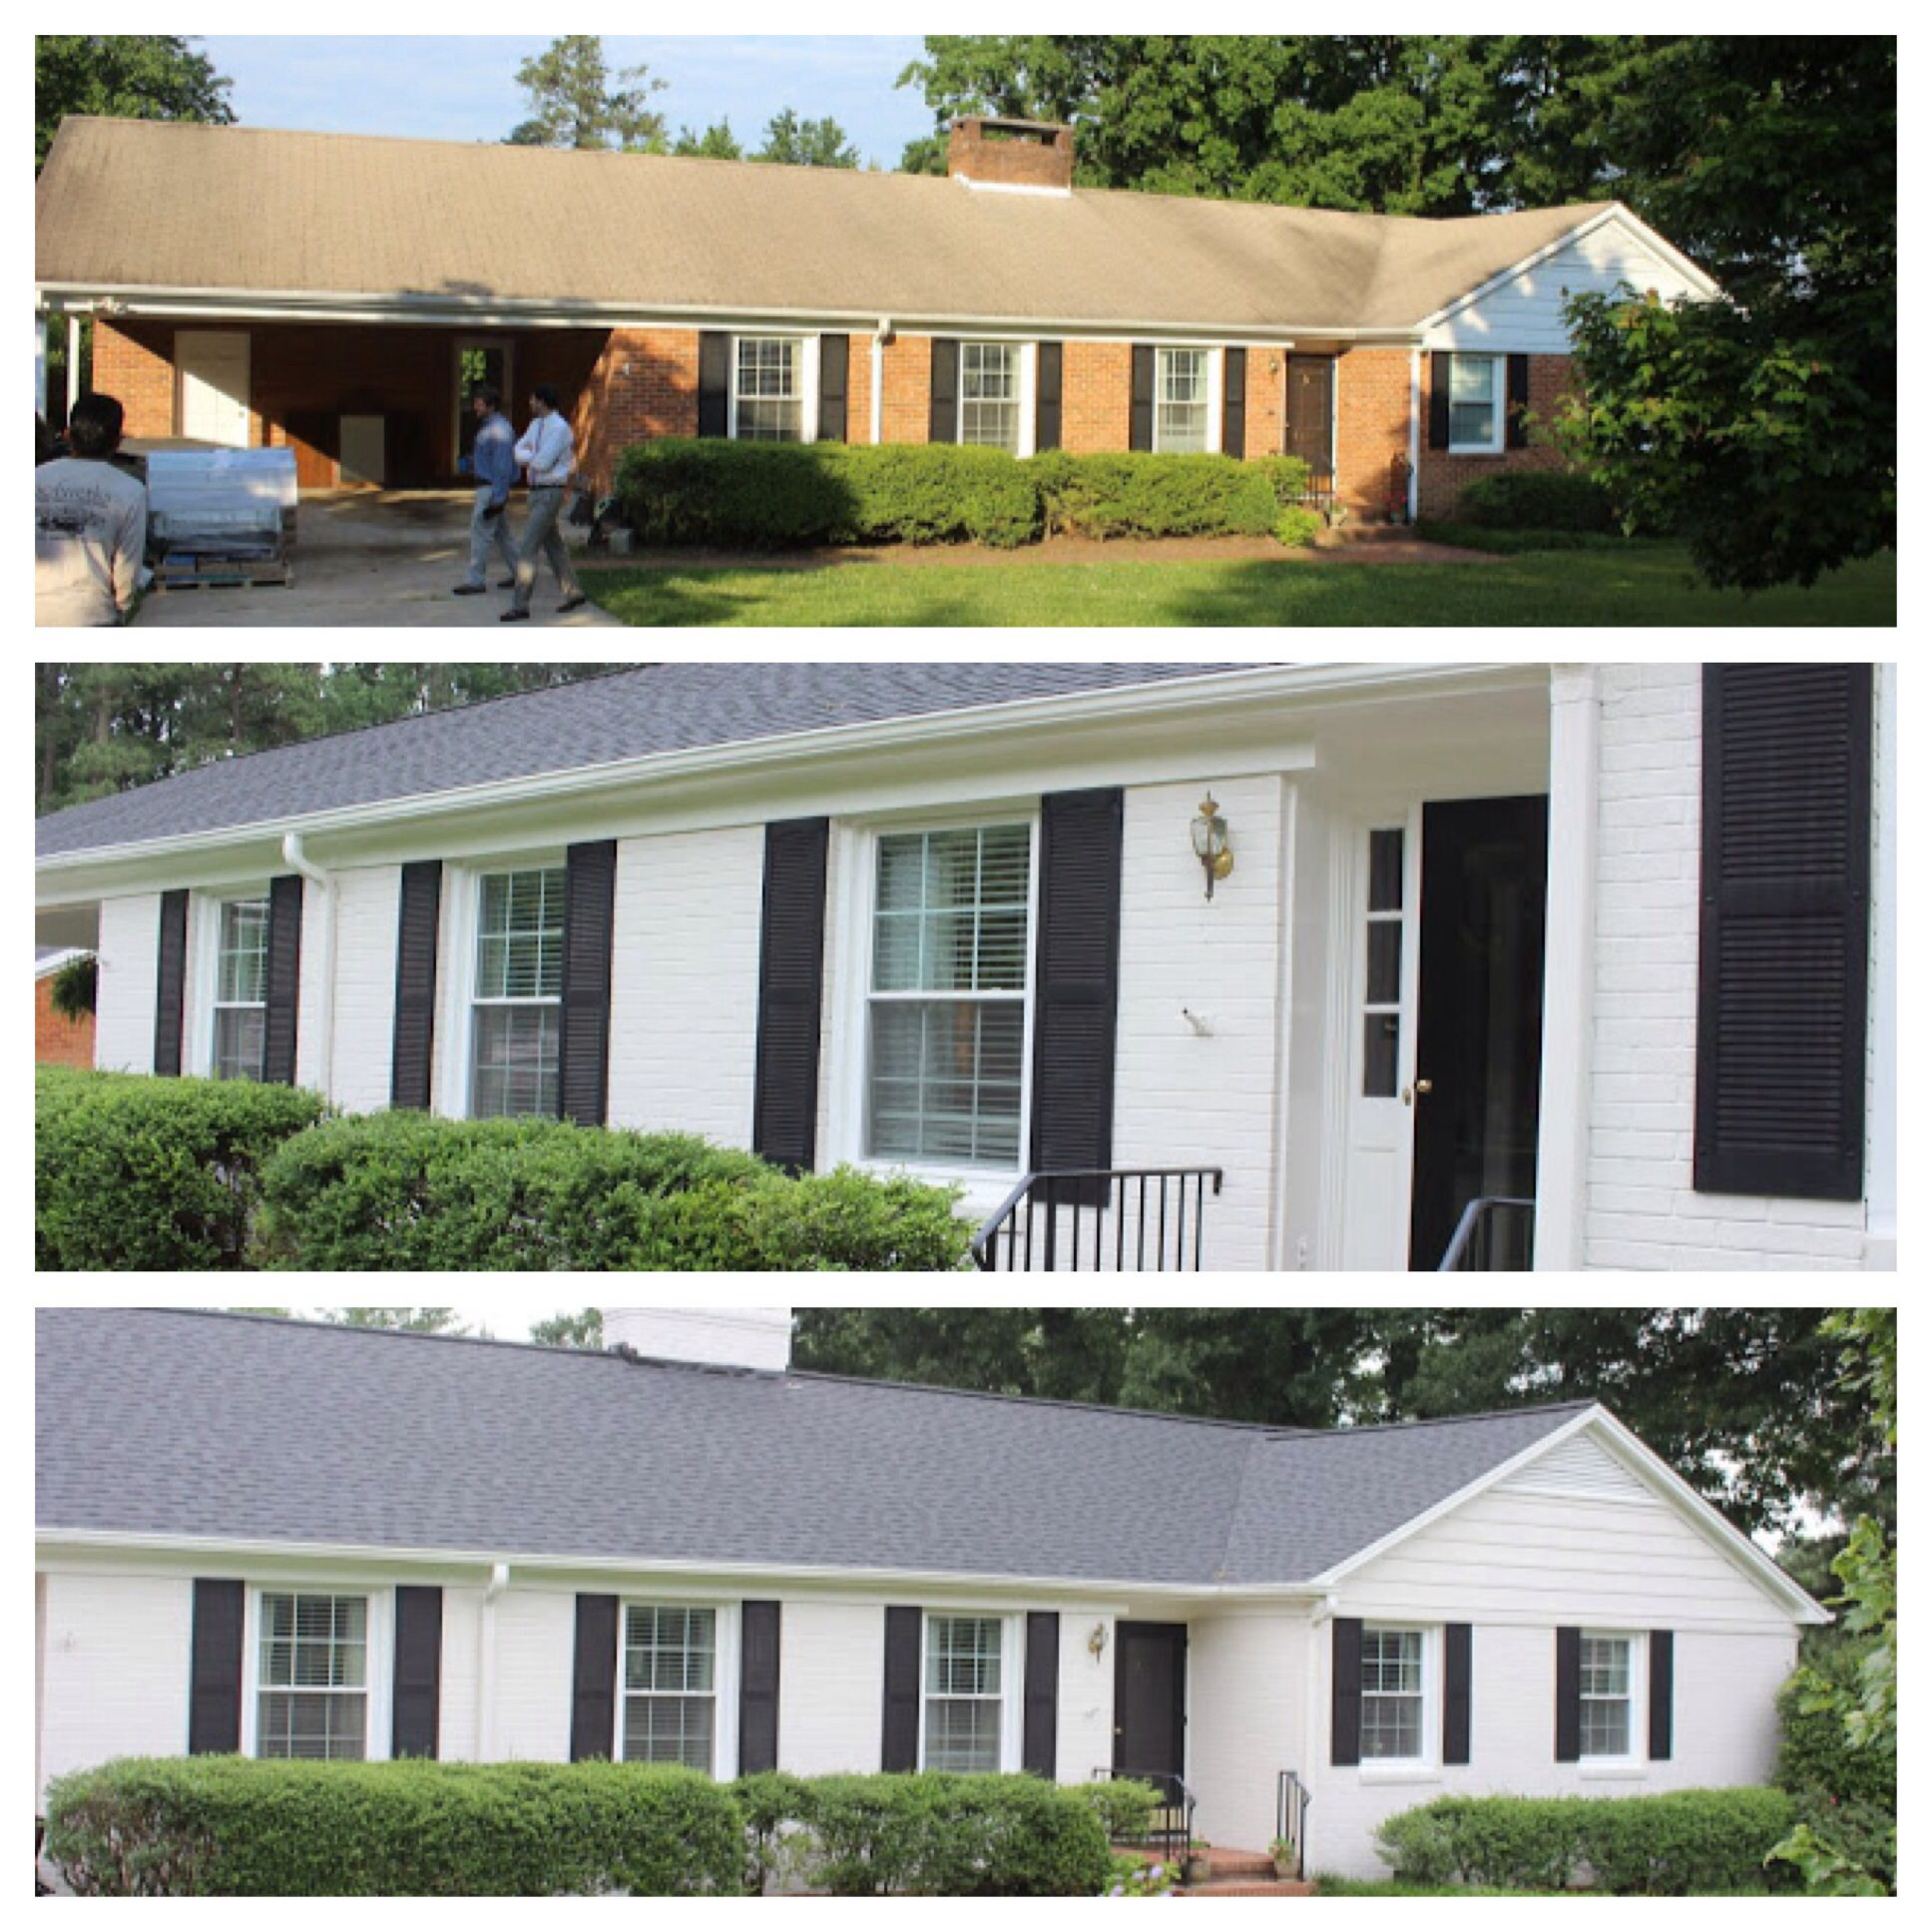 Ranch House Curb Appeal 8 Small Homes Get Huge Facelifts Ranch Exterior And Curb Appeal